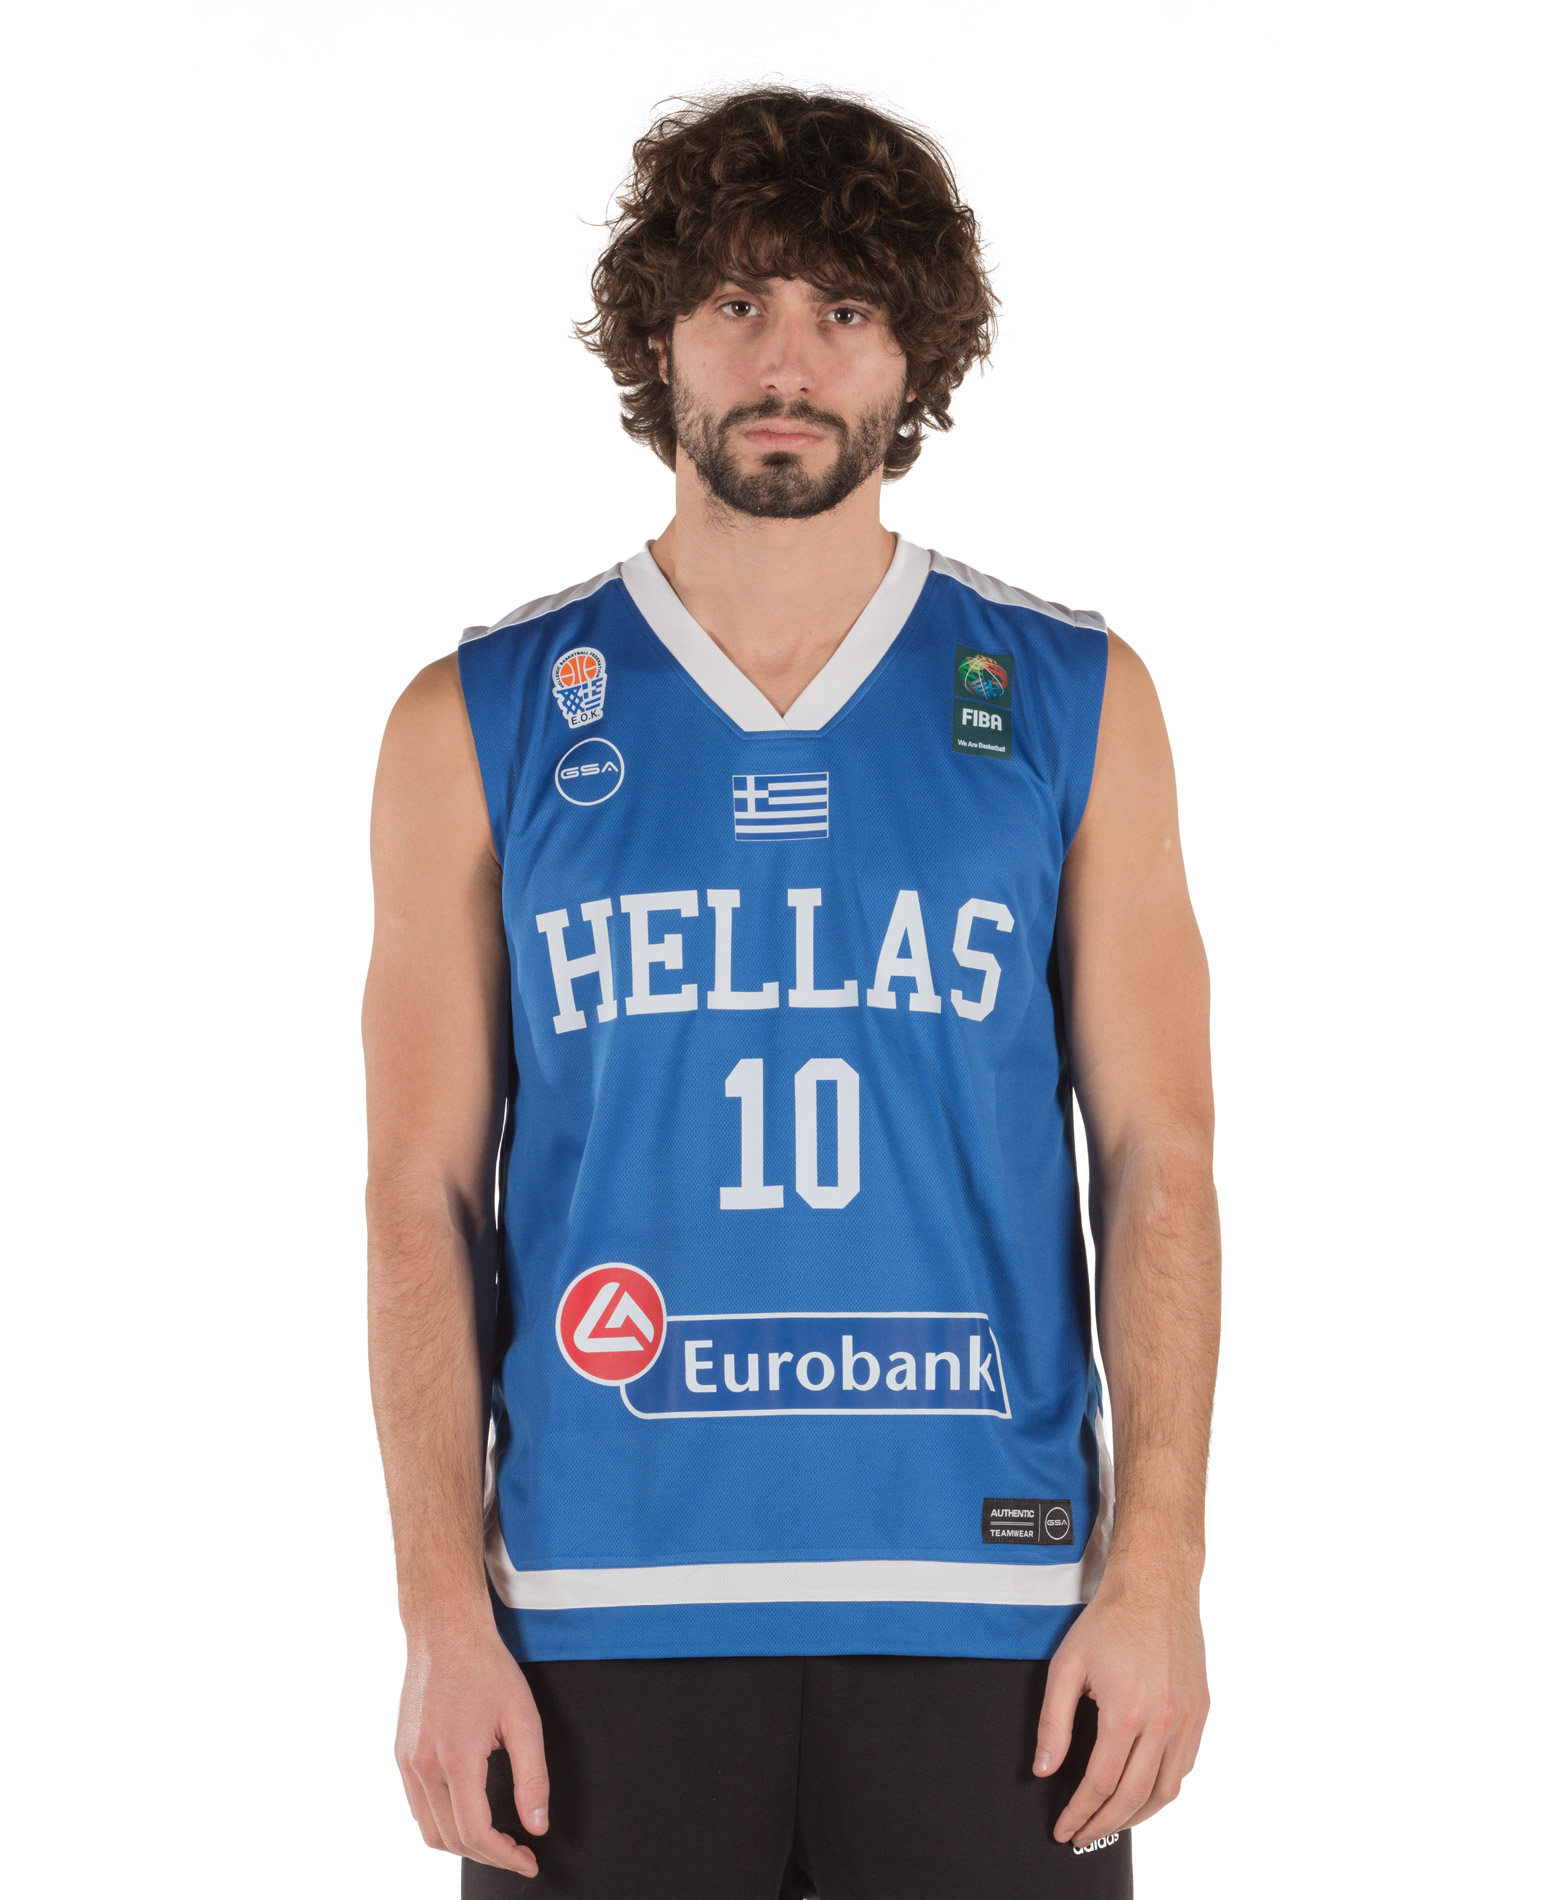 GSA GAME SHIRT HELLAS BASKETBALL SLOUKAS 17-17080 Μπλε